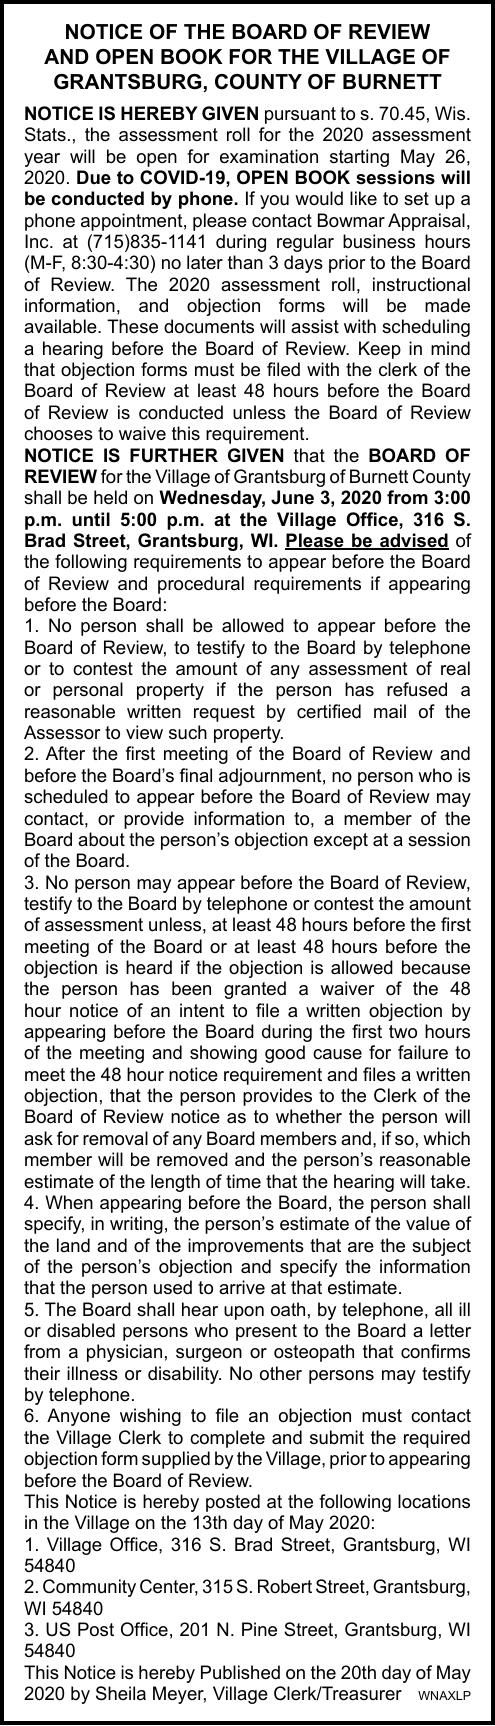 Village of Grantsburg - Board of Review